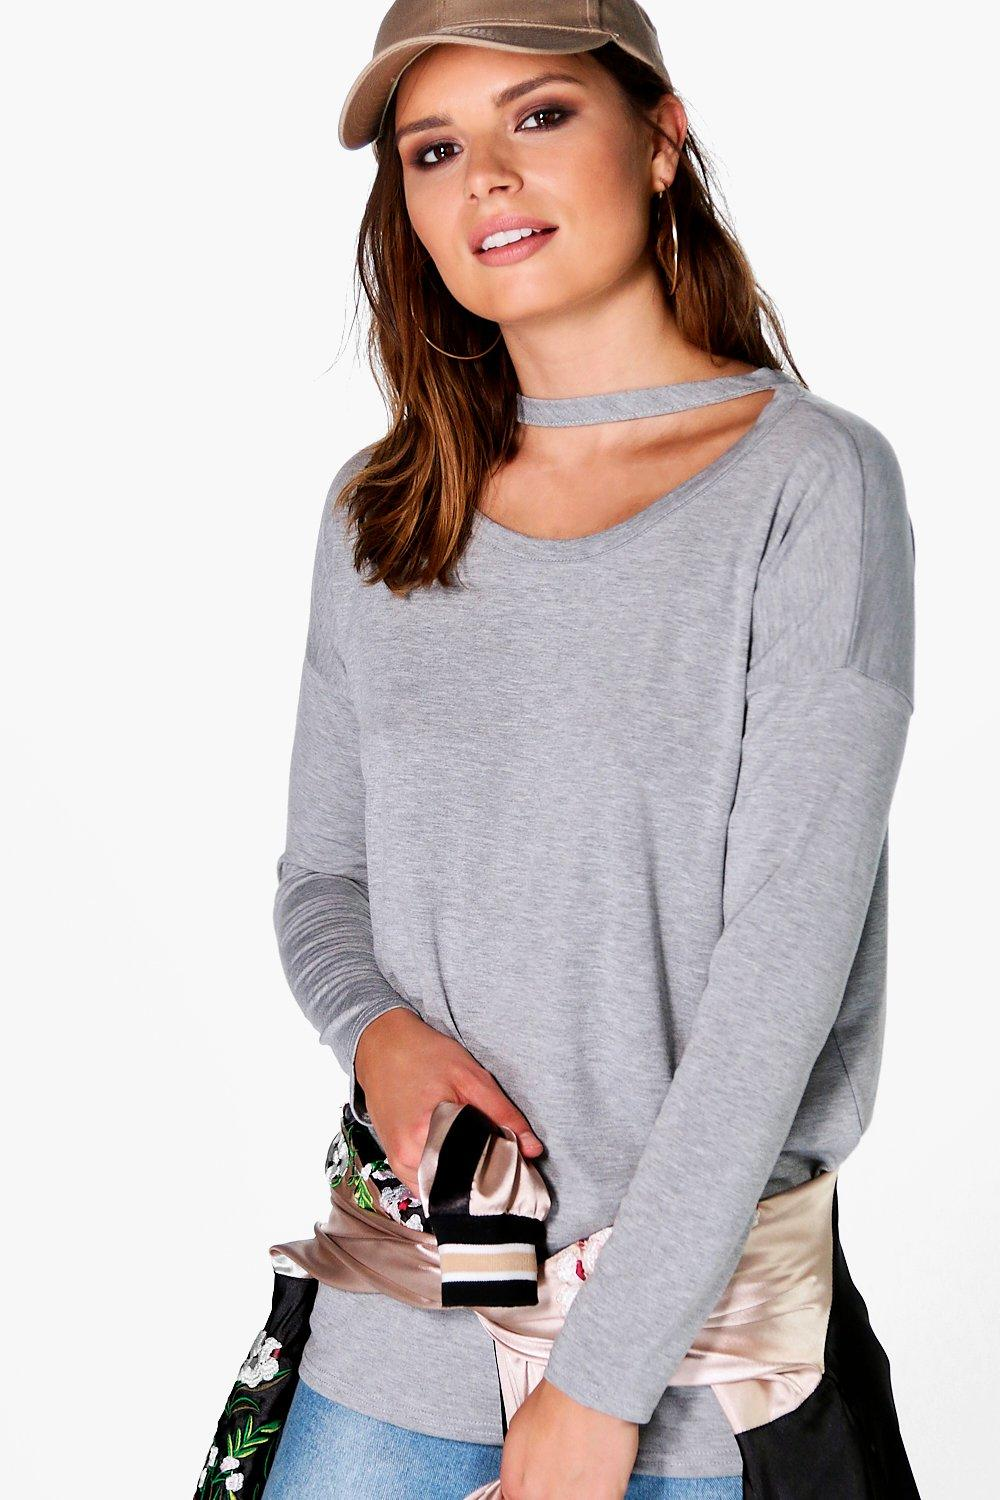 Annabelle Neck Strap Detail Long Sleeve T-shirt